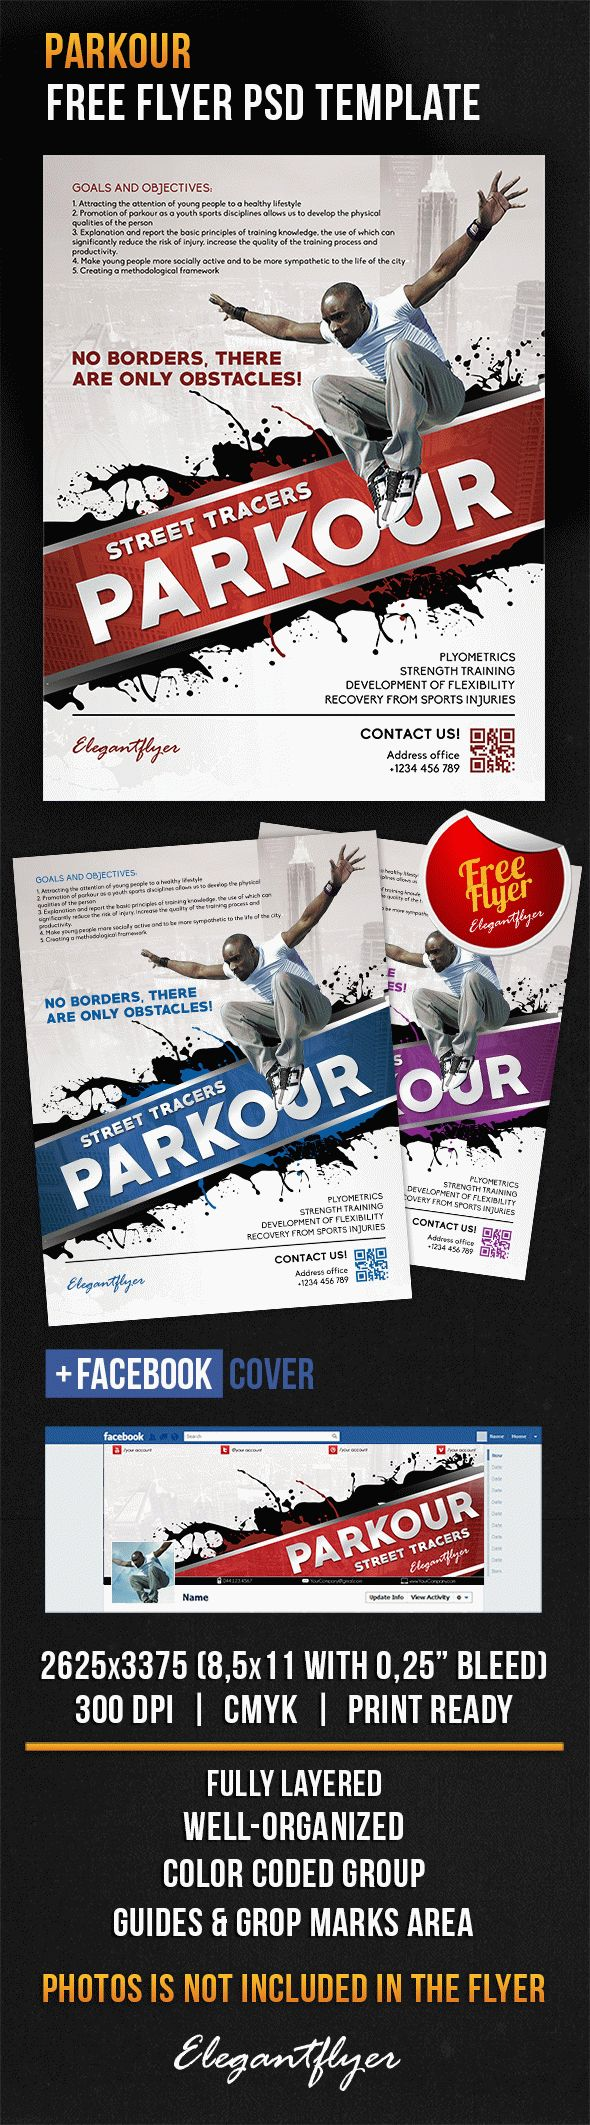 Parkour – Free Flyer PSD Template + Facebook Cover